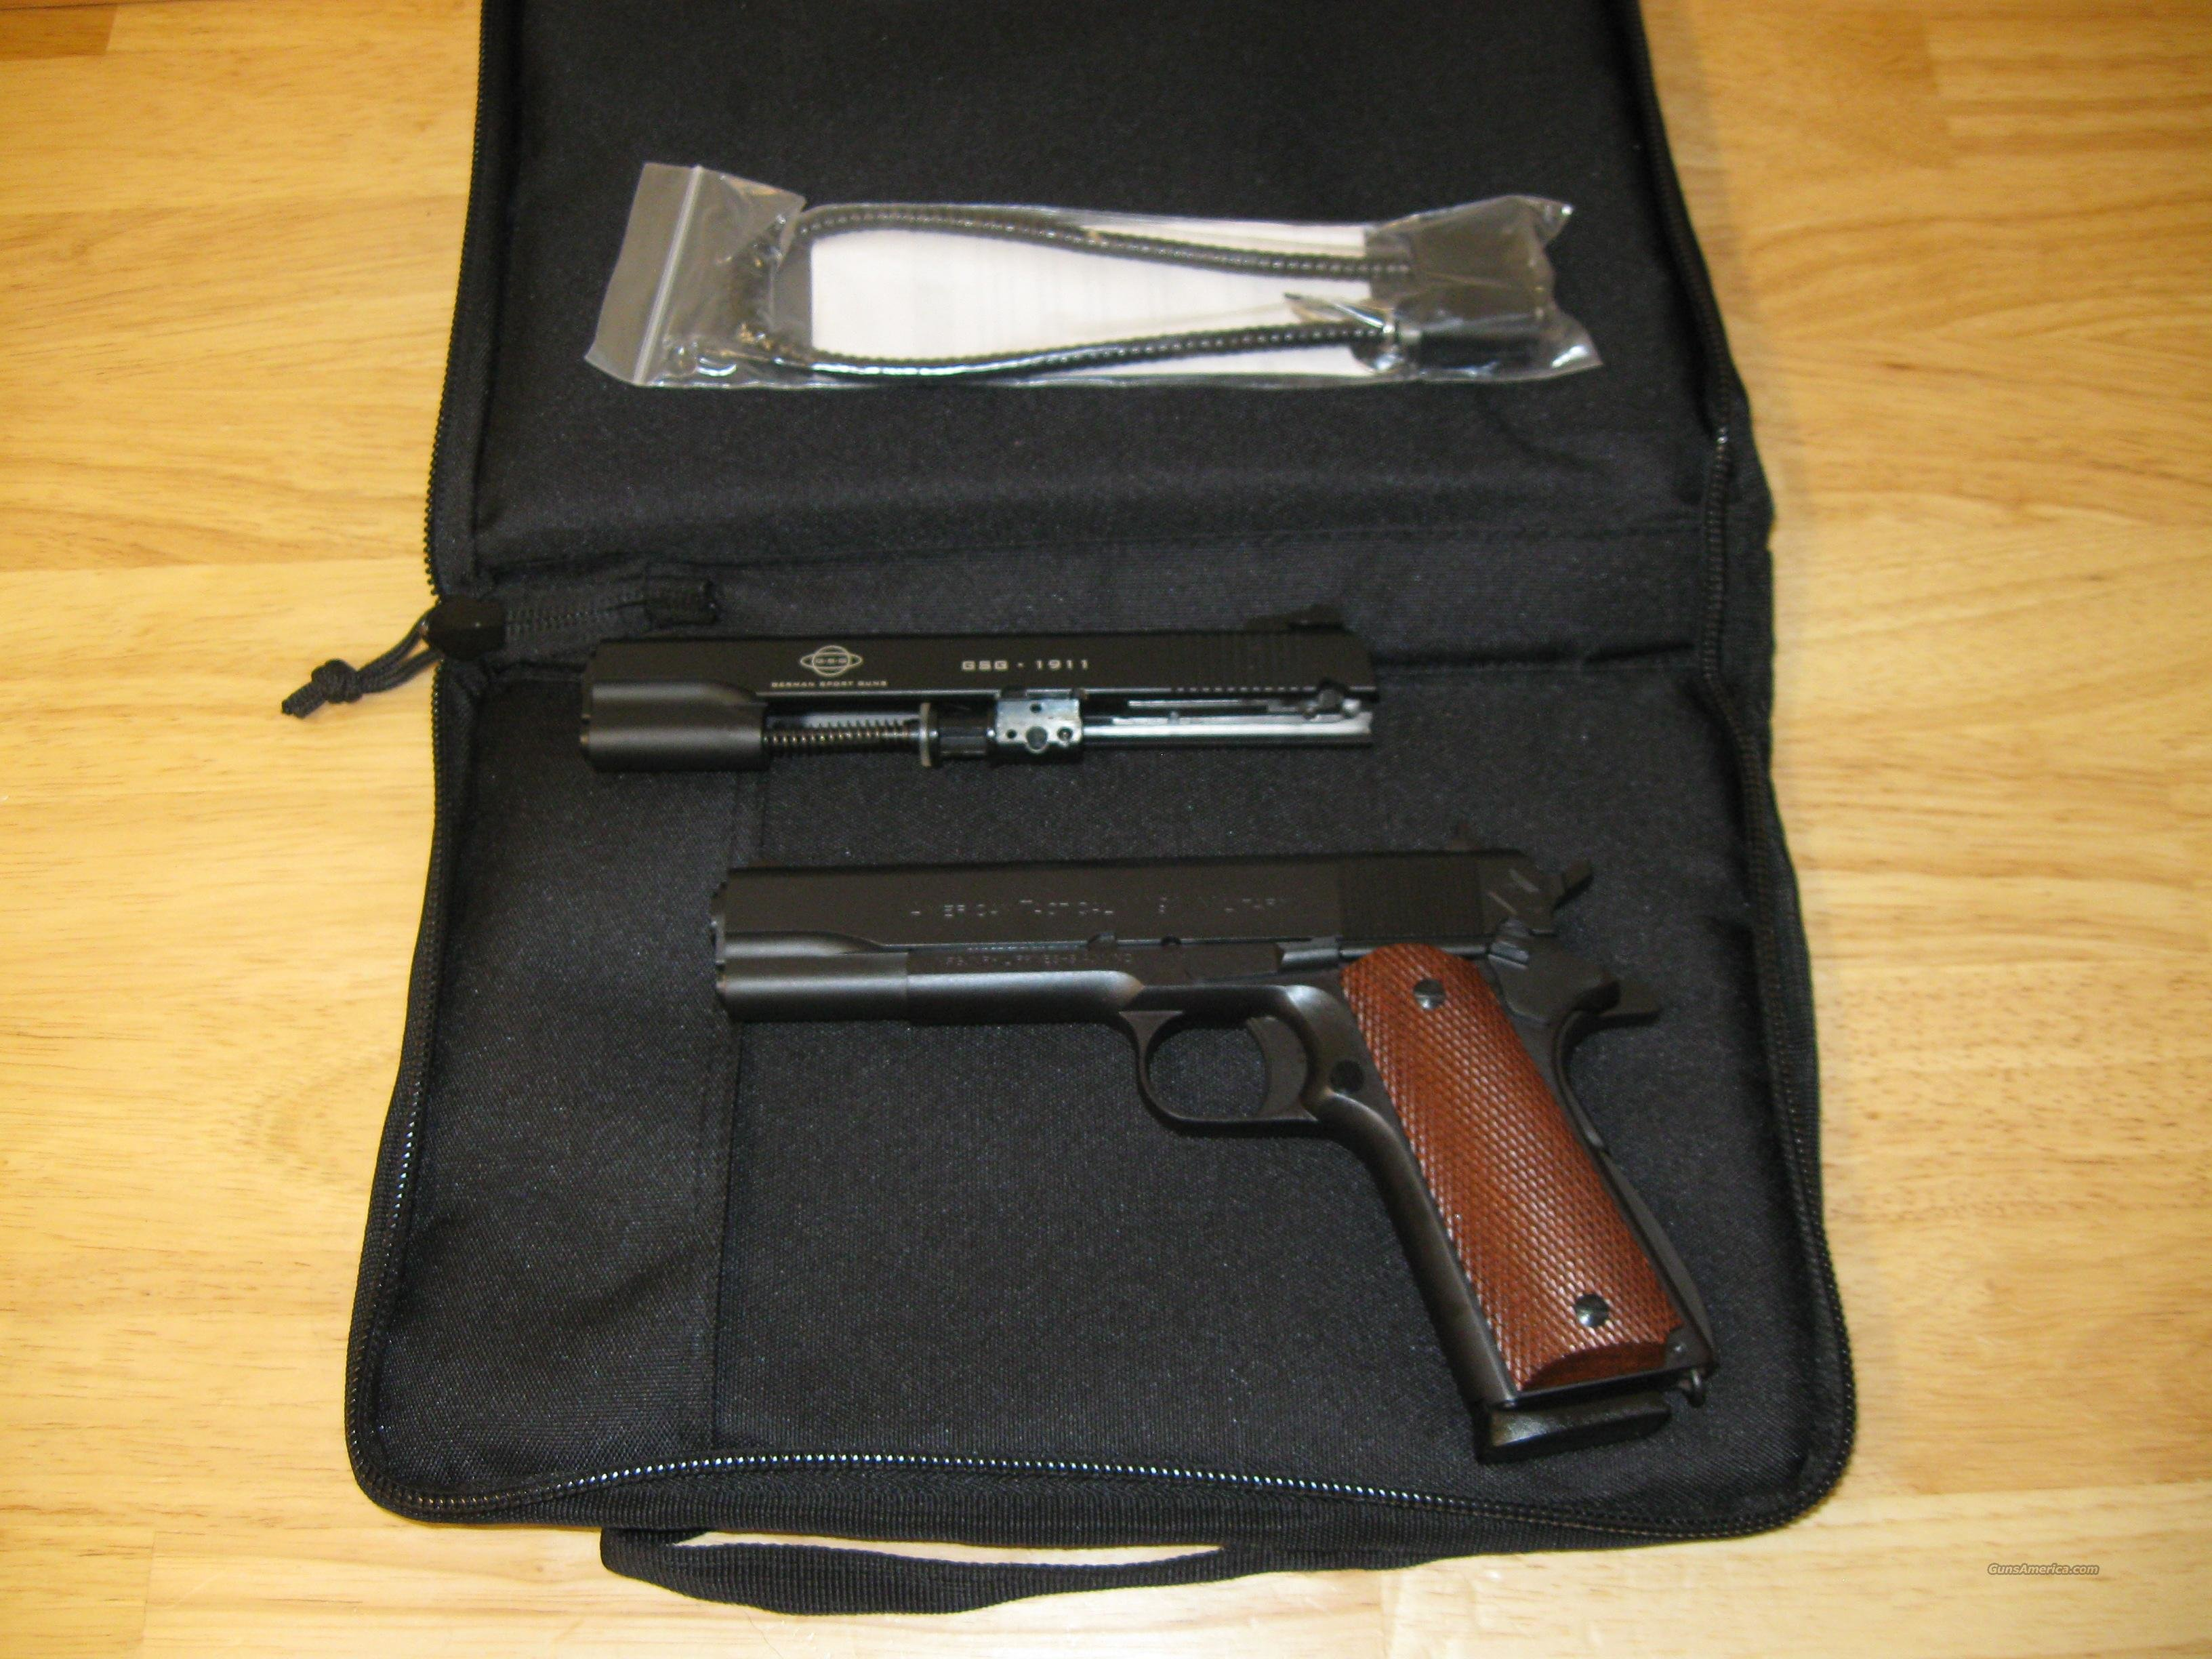 "AMERICAN TACTICAL IMPORTS FX45 1911 MILITARY 45 ACP TALO EXCLUSIVE 5"" W/ 22LR CONVERSION  Guns > Pistols > 1911 Pistol Copies (non-Colt)"